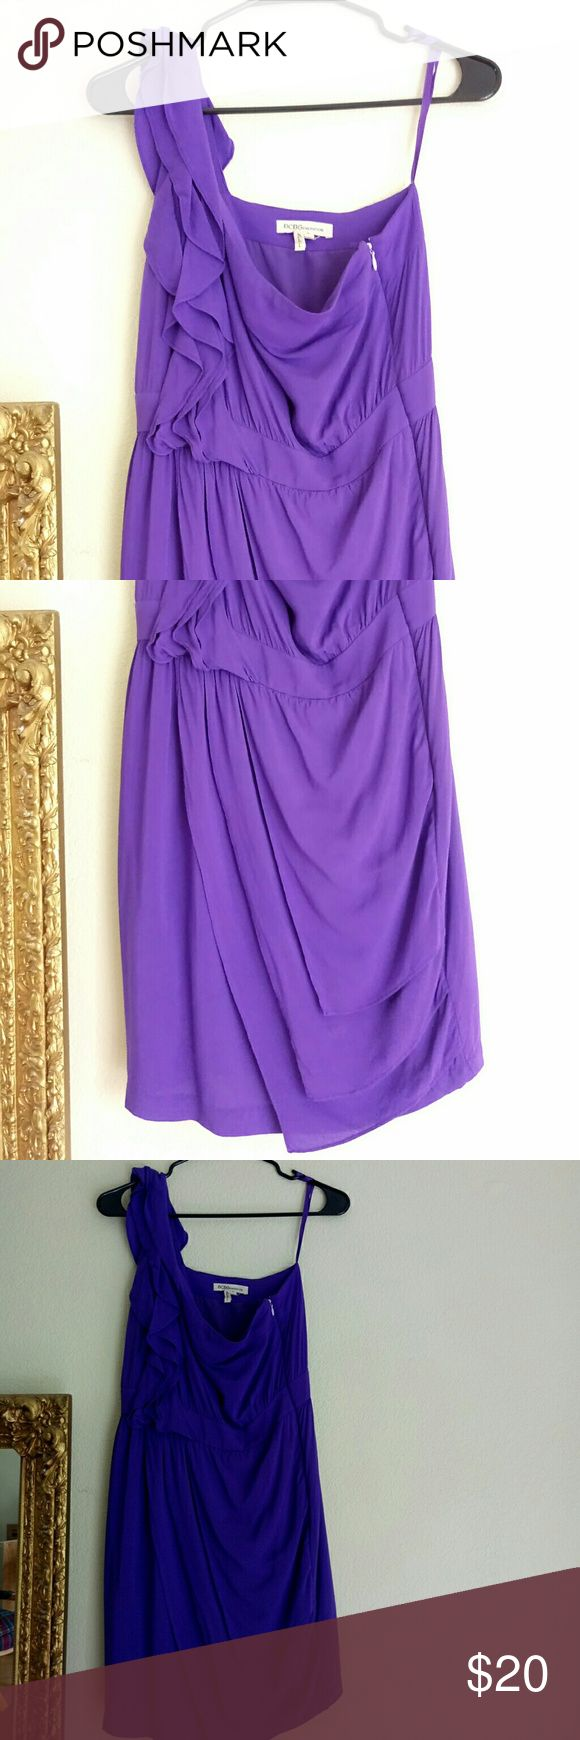 Cute Purple Mini Dress This dress is lightly used,  rich purple color,  one shoulder, with a wrapped skirt look BCBGeneration Dresses One Shoulder